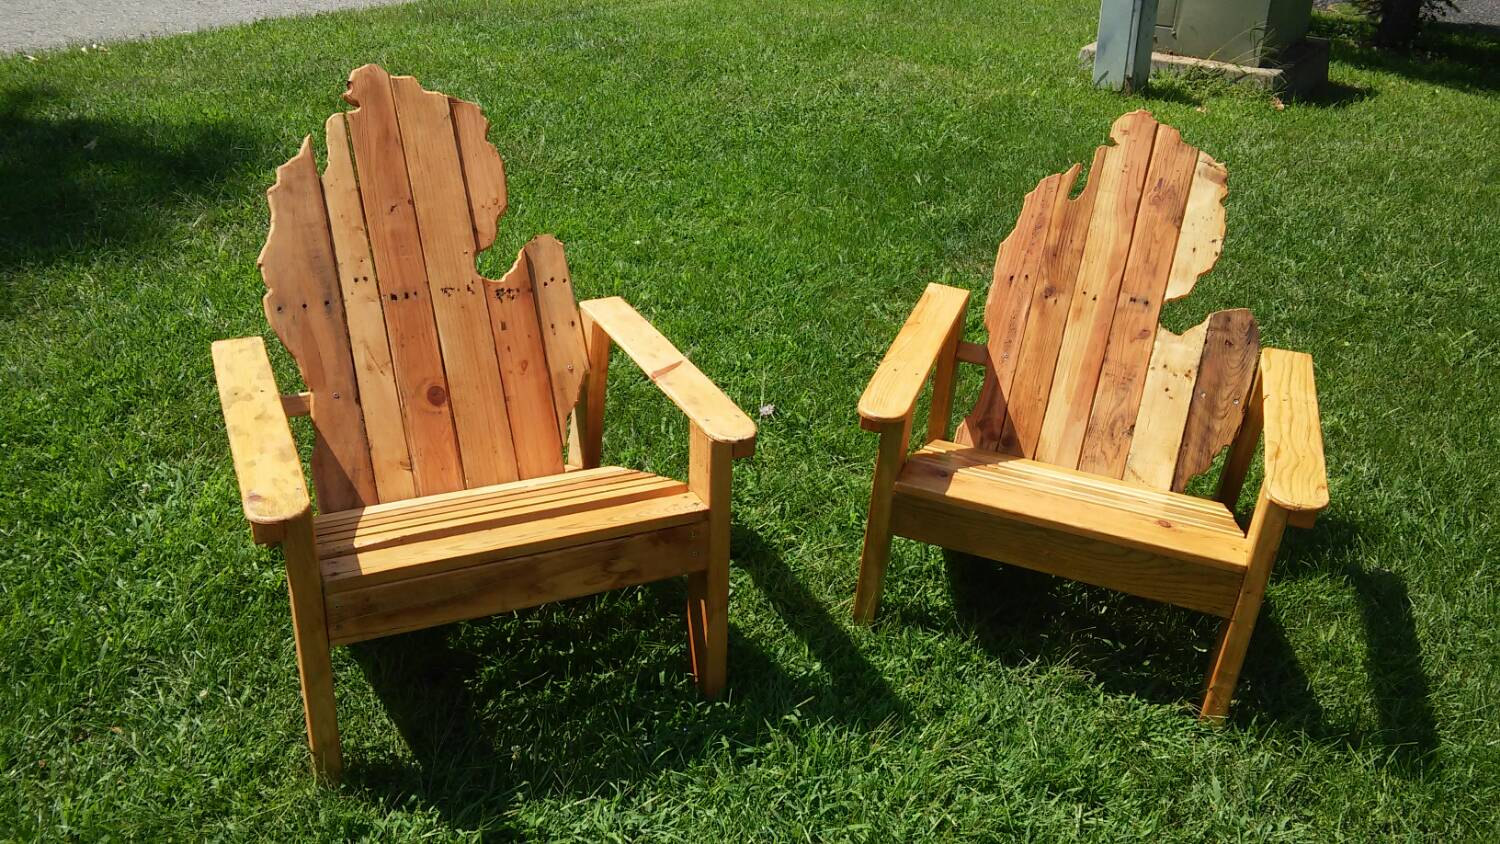 michigan adirondack chair beanless bag by backwoodcreations22 on etsy